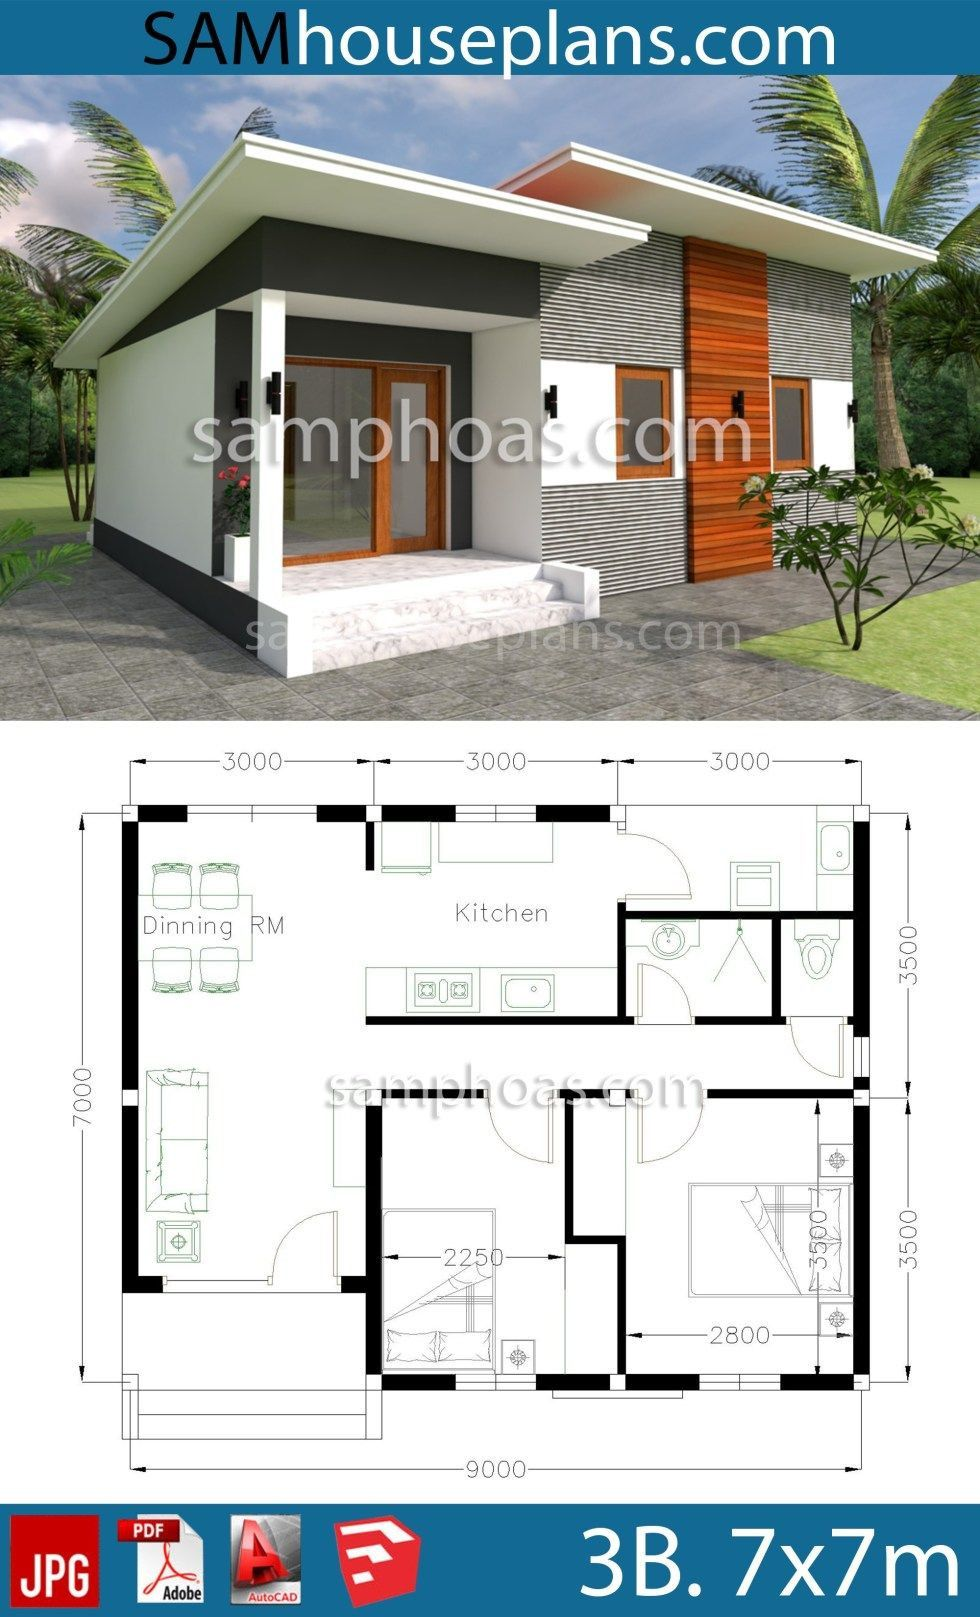 Inspirational Small House Plans 2 Floors Modern House Plans 9x7m With 2 Bedrooms In 2020 In 2020 Craftsman House Plans 2 Bedroom House Design Modern Bungalow House